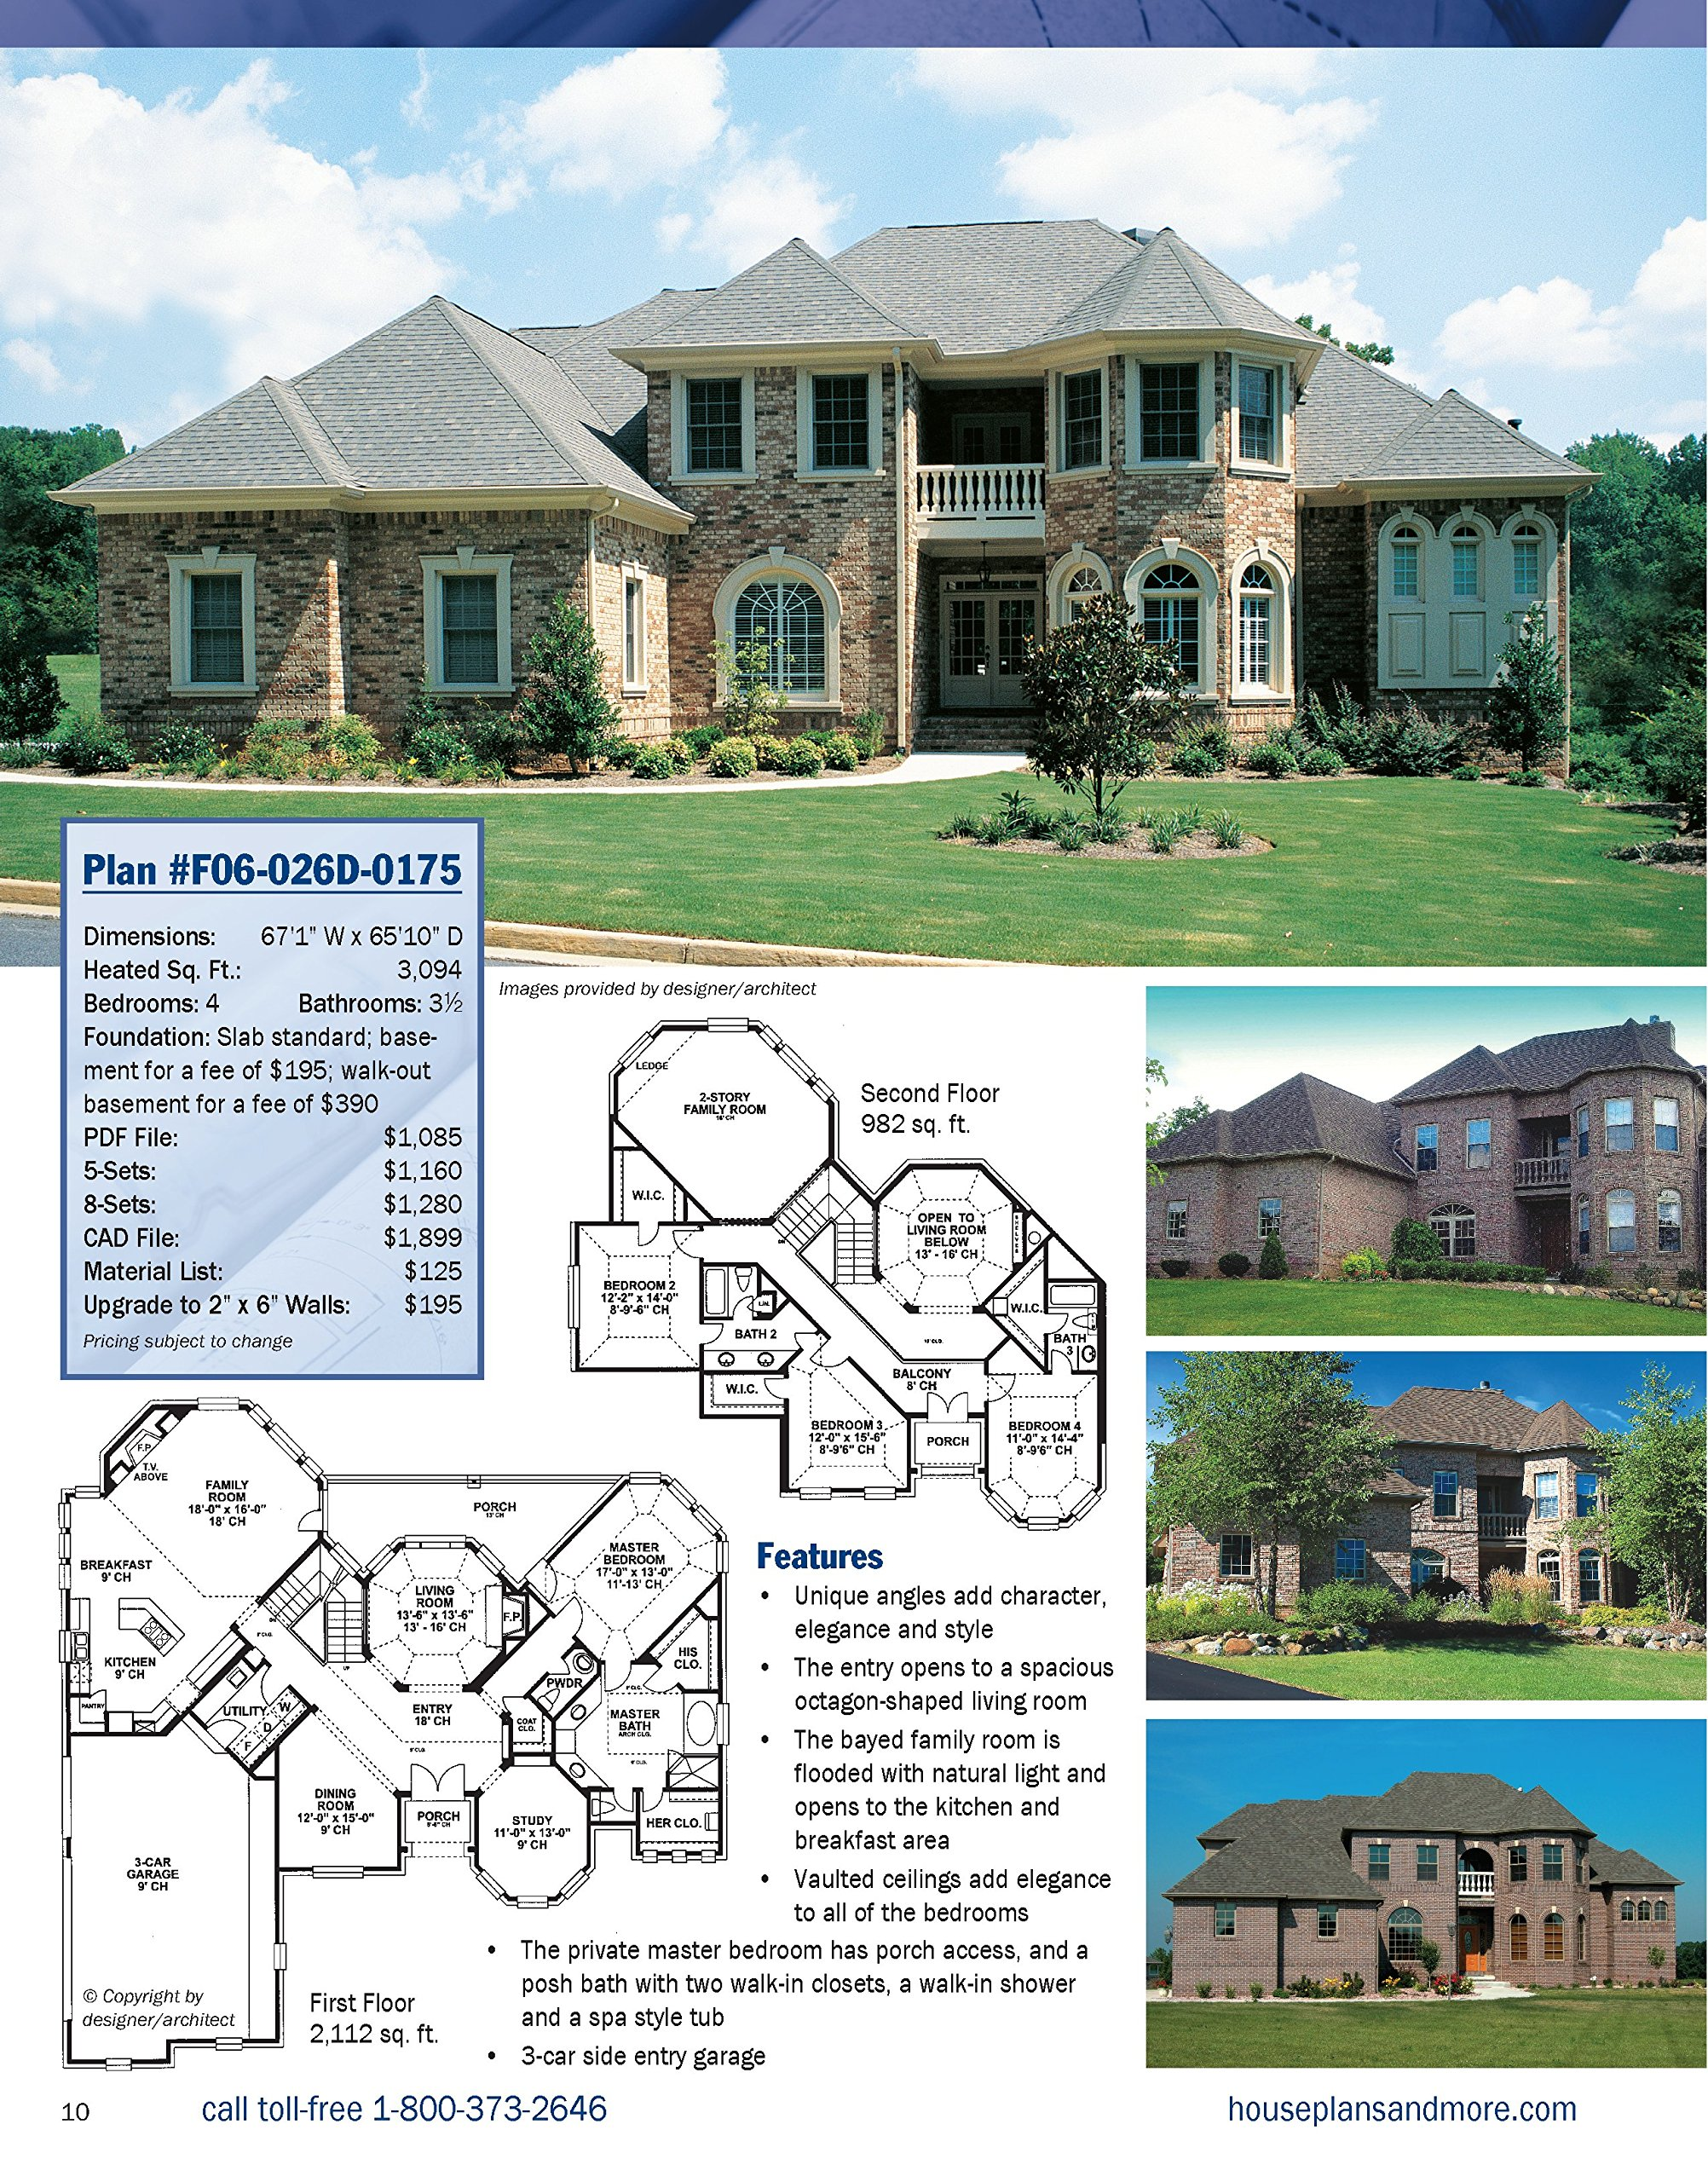 Best-Selling House Plans, Completely Updated & Revised 3rd Edition ...